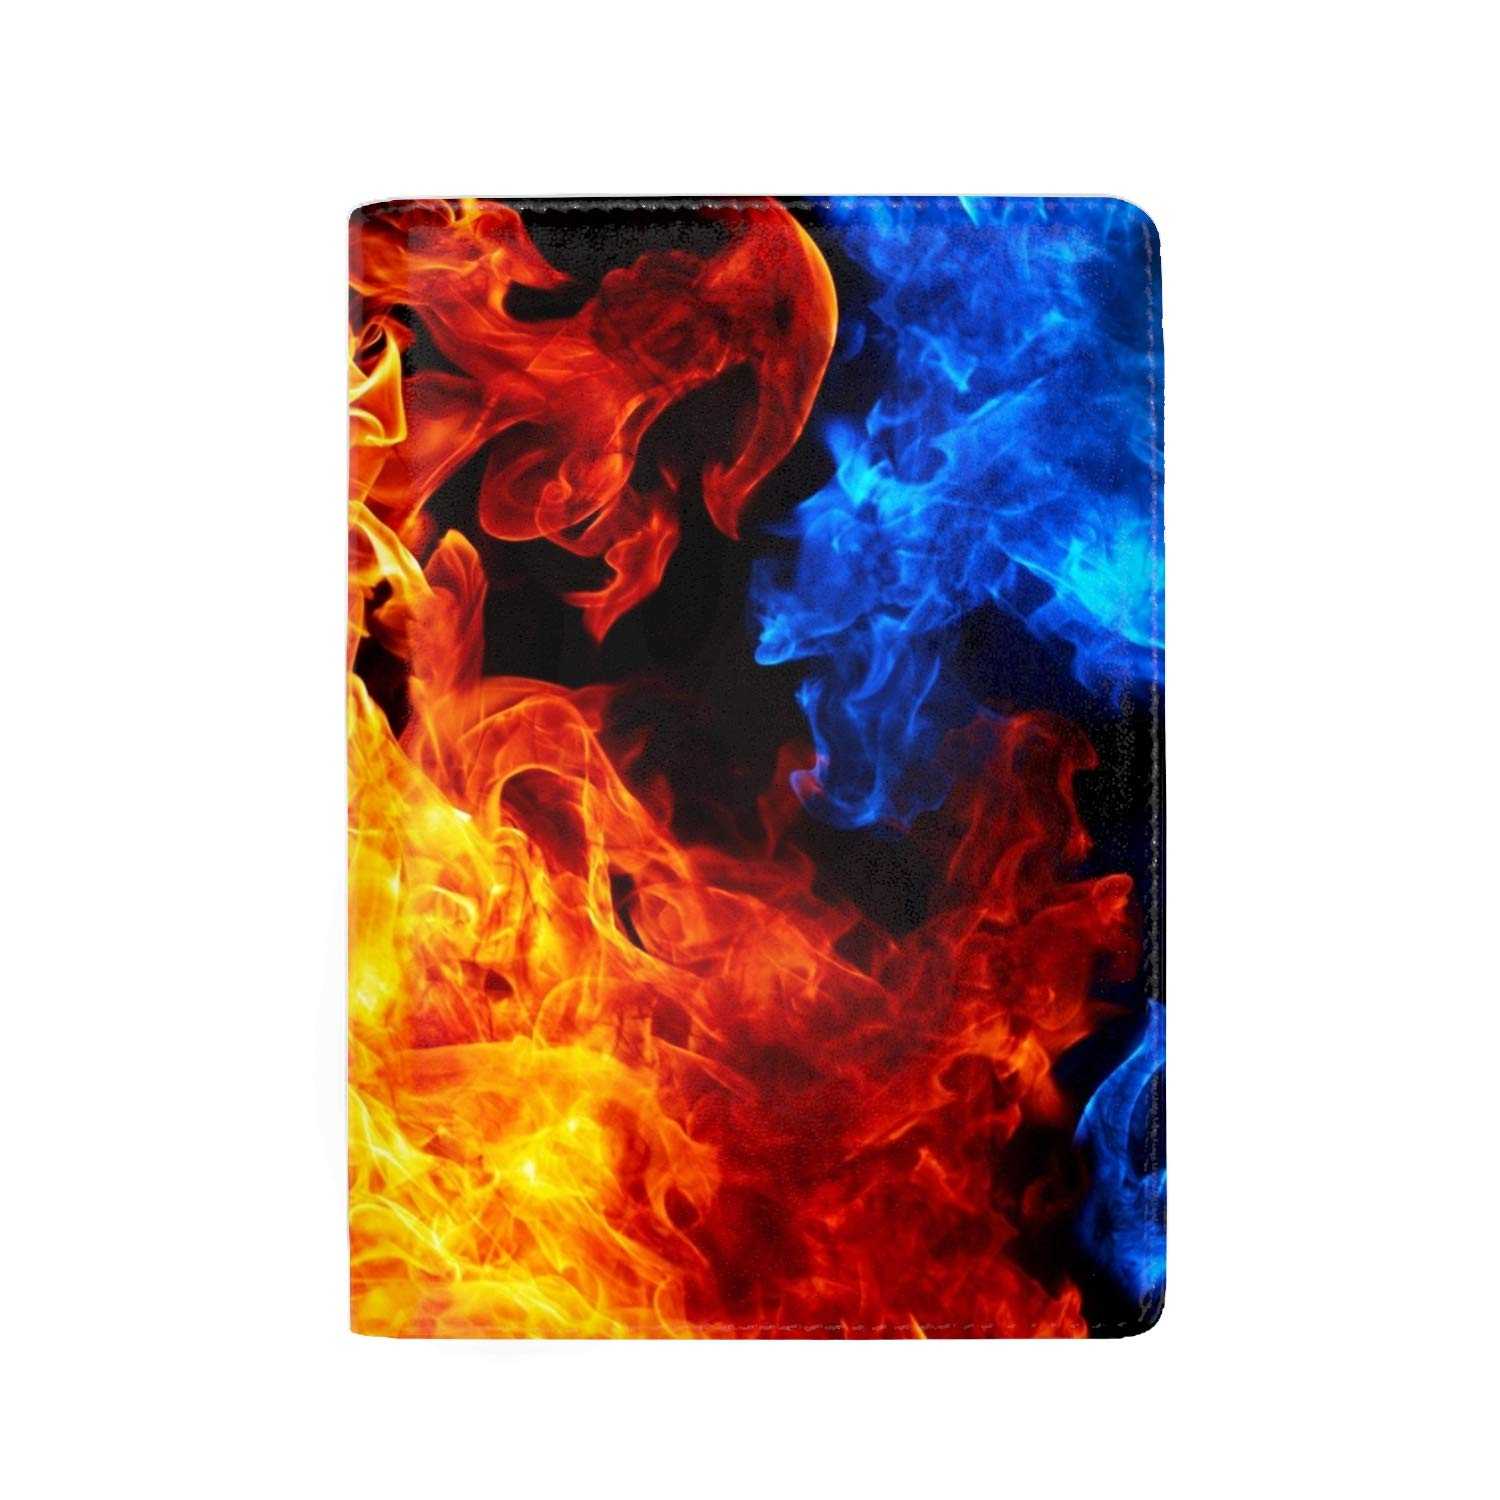 RFID Blocking Genuine Leather Passport Case Cover Holder Travel Wallet Ice And Fire